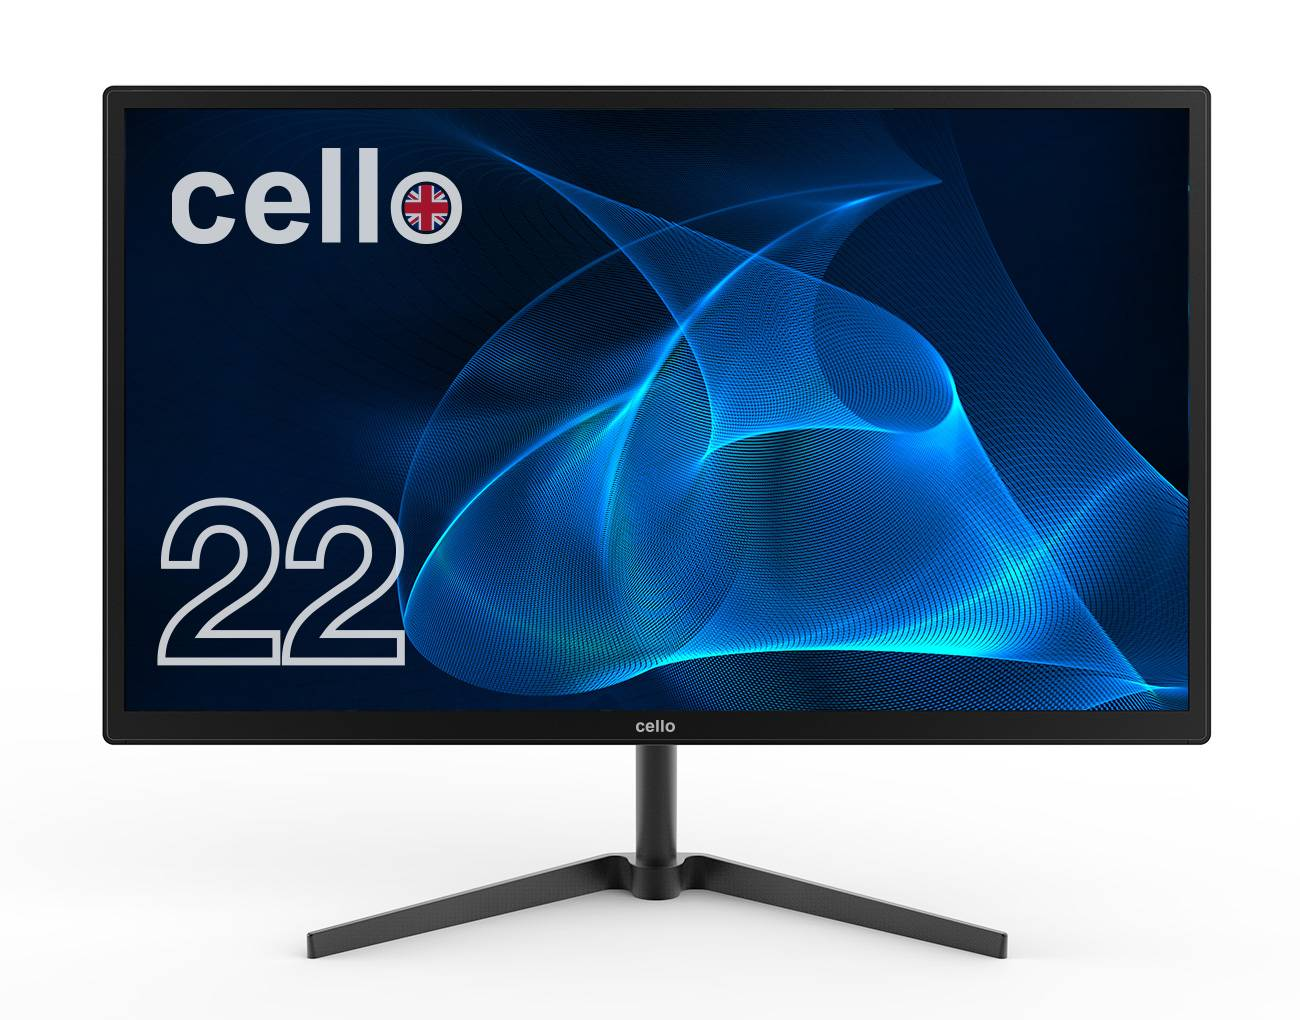 "Cello 22"" Full HD LED Computer Monitor with Speakers"